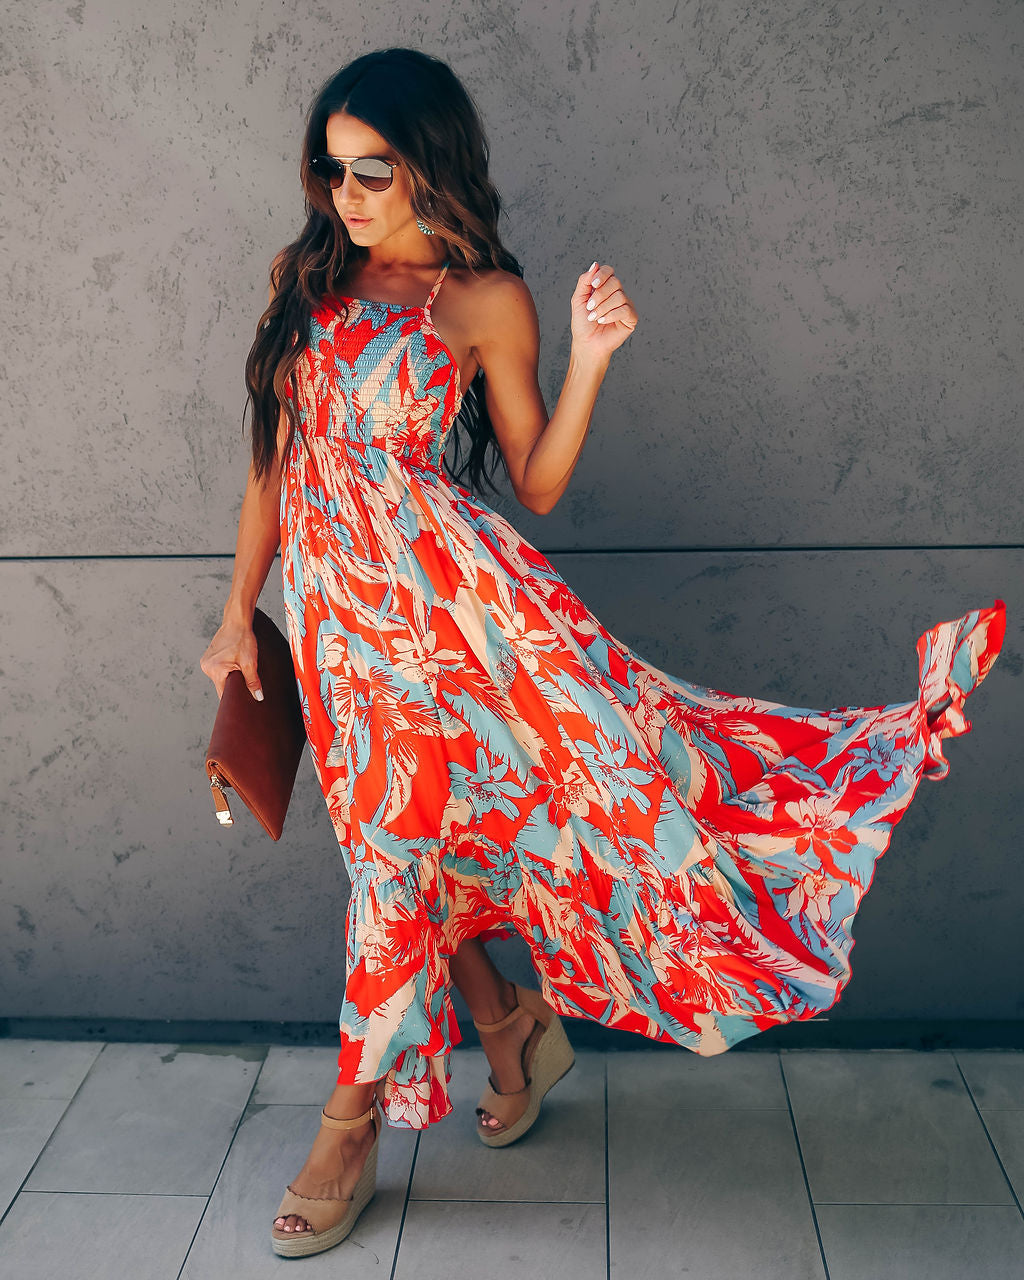 0d26584df42e0 Heat Wave Smocked Printed Maxi Dress - FREE PEOPLE